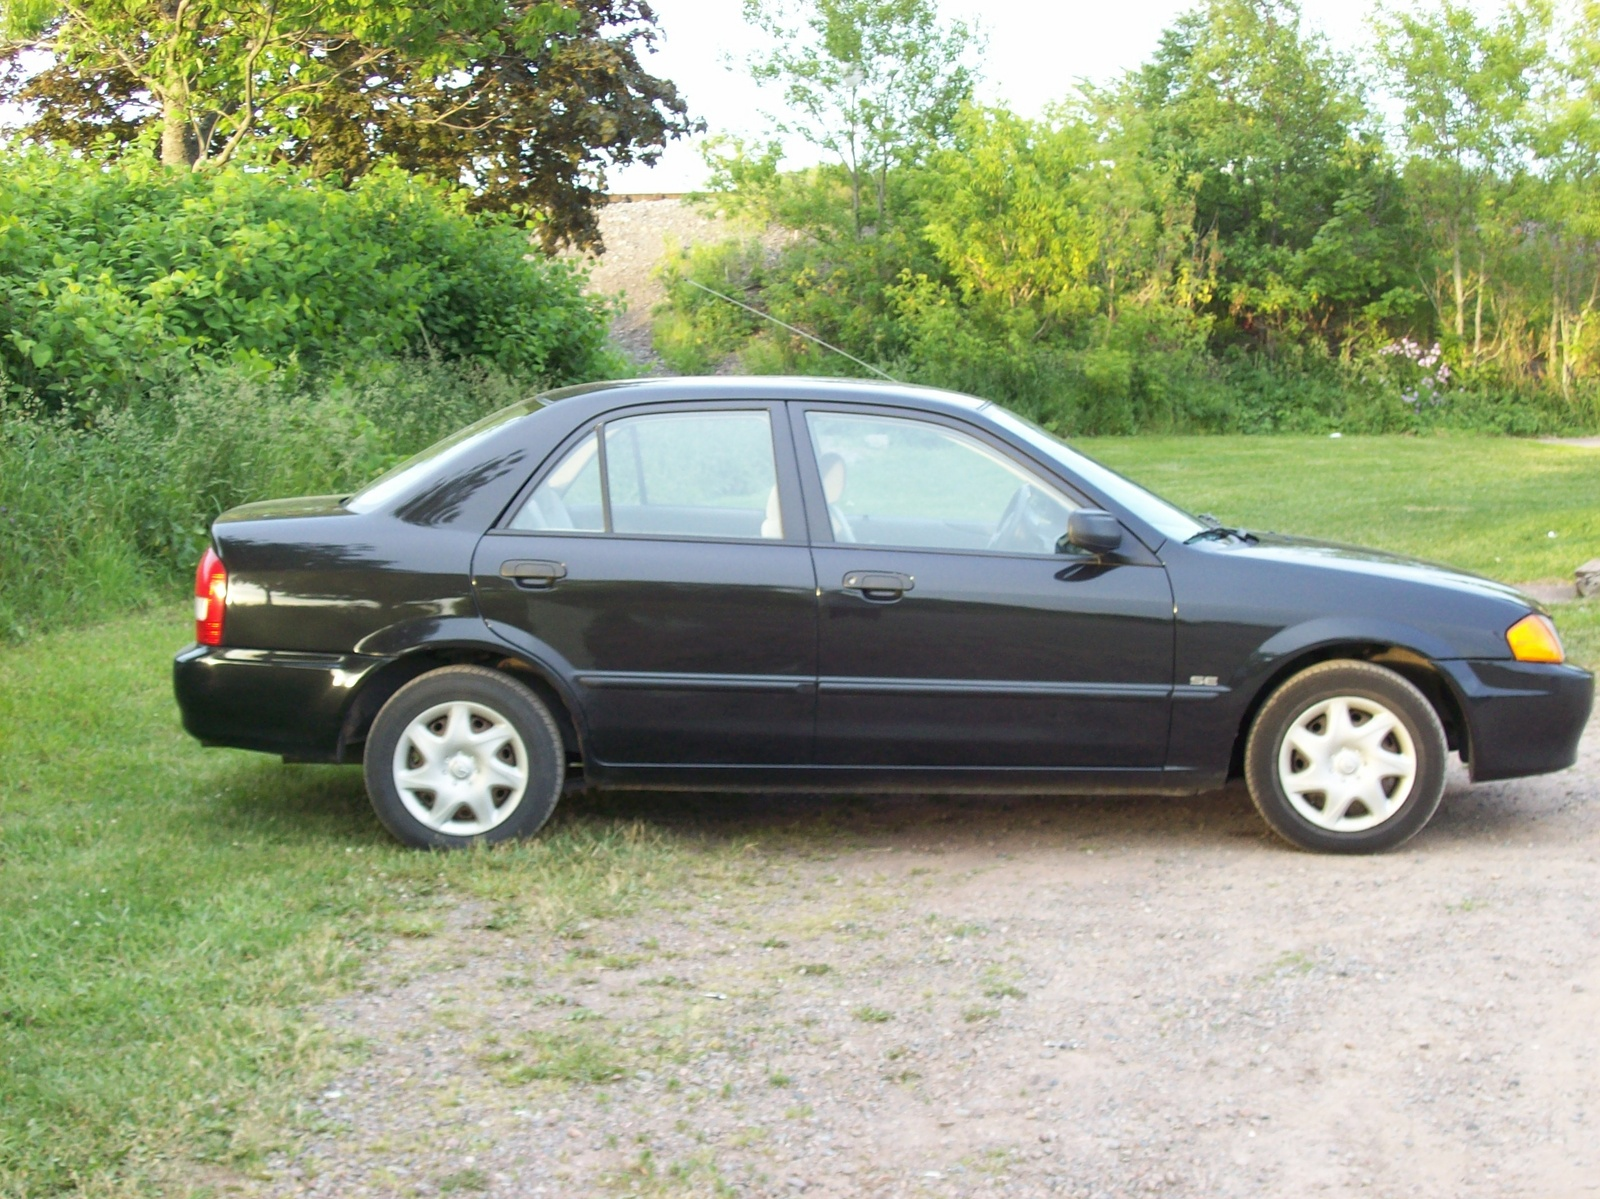 Black Mazda Capella 1995